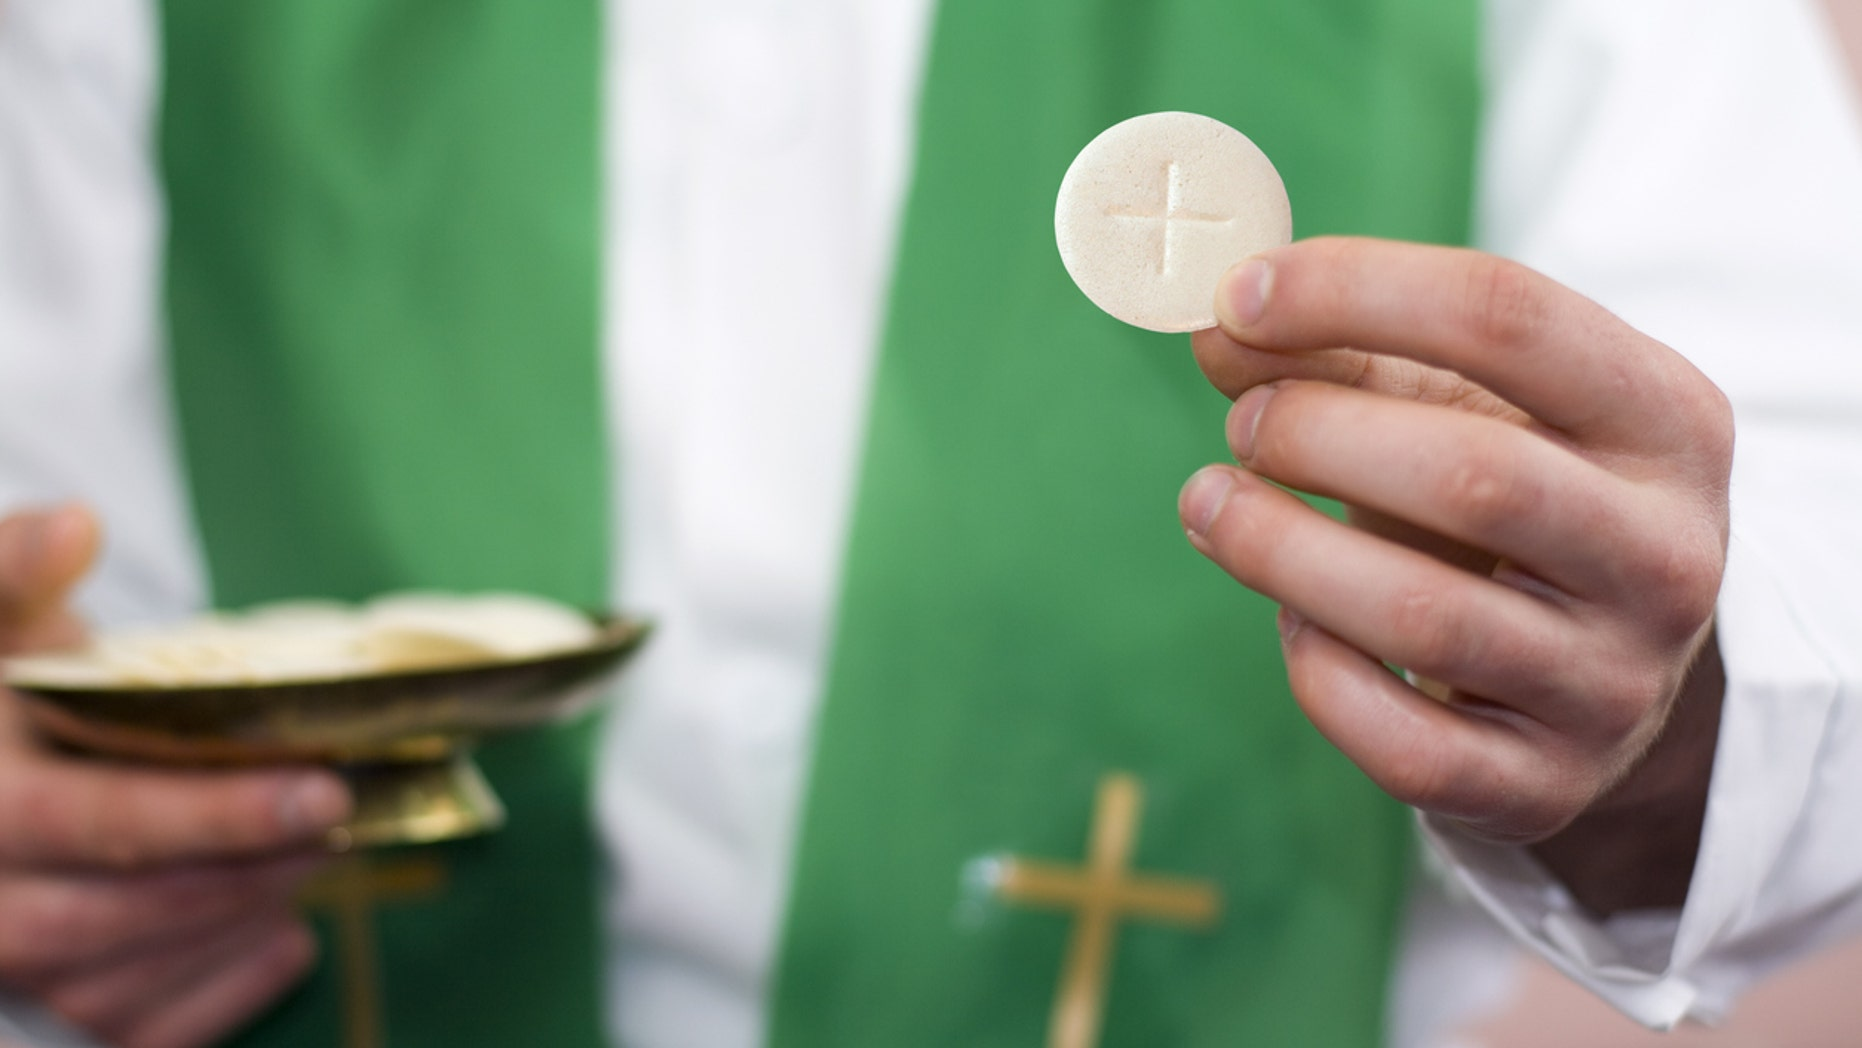 Several churches made the decision to offer the specialized bread during the Holy Eucharist for members who had celiac disease or had a sensitivity to gluten.